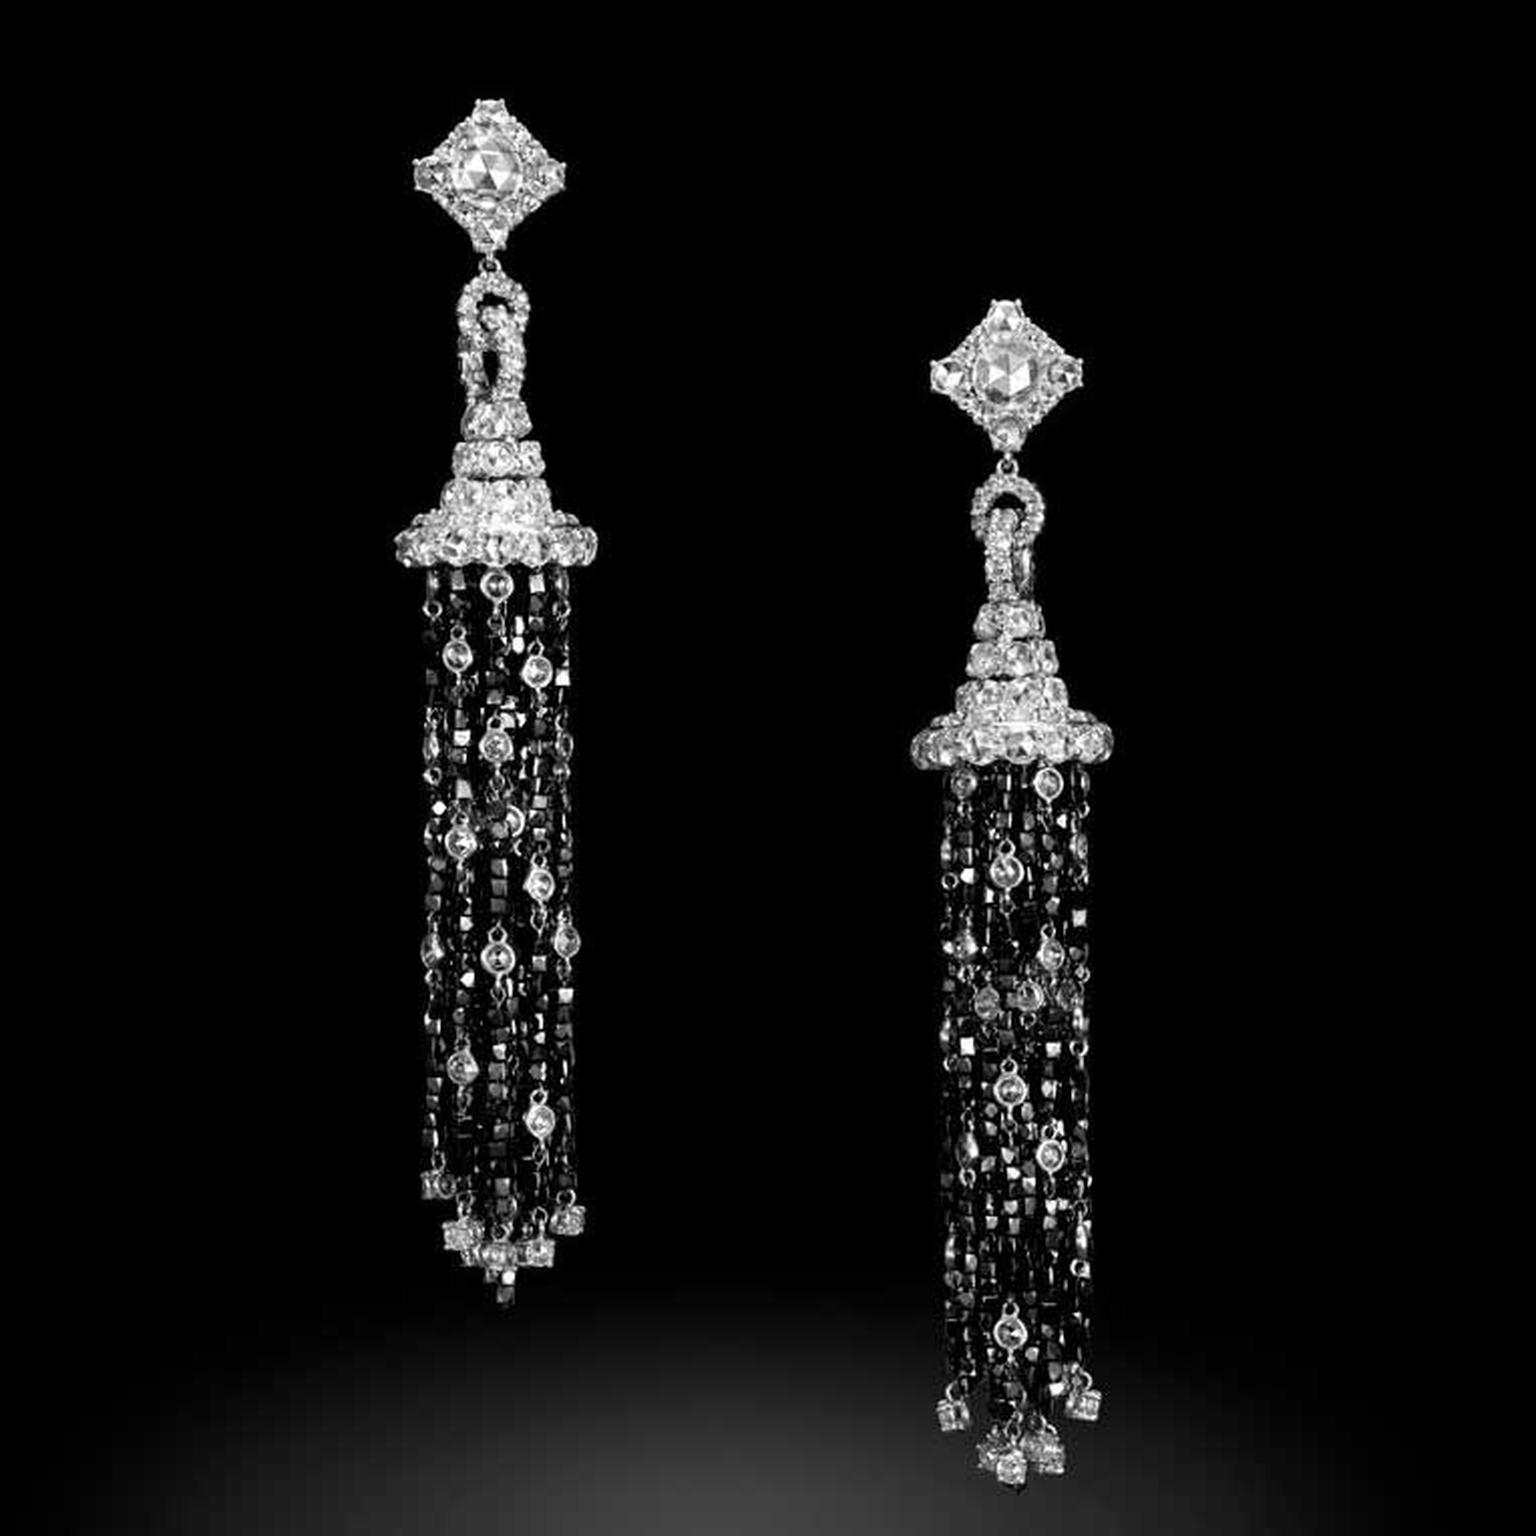 Carnet Midnight Glamour diamond earrings